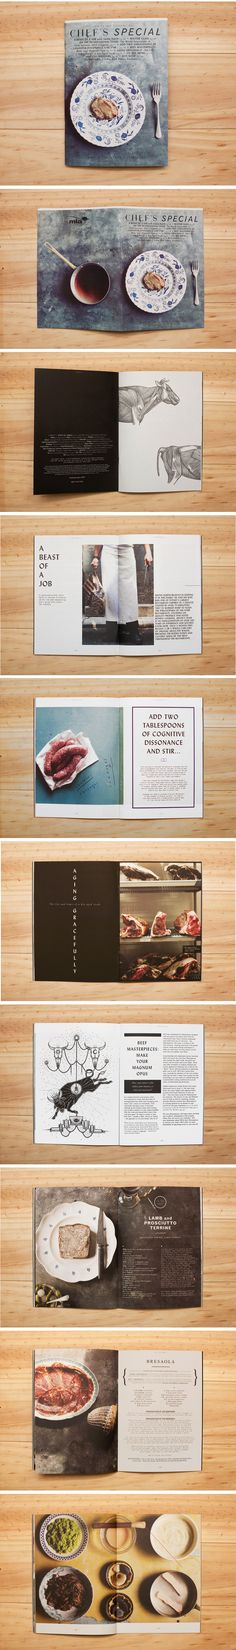 Chef's Special #70 - page layout magazine spread